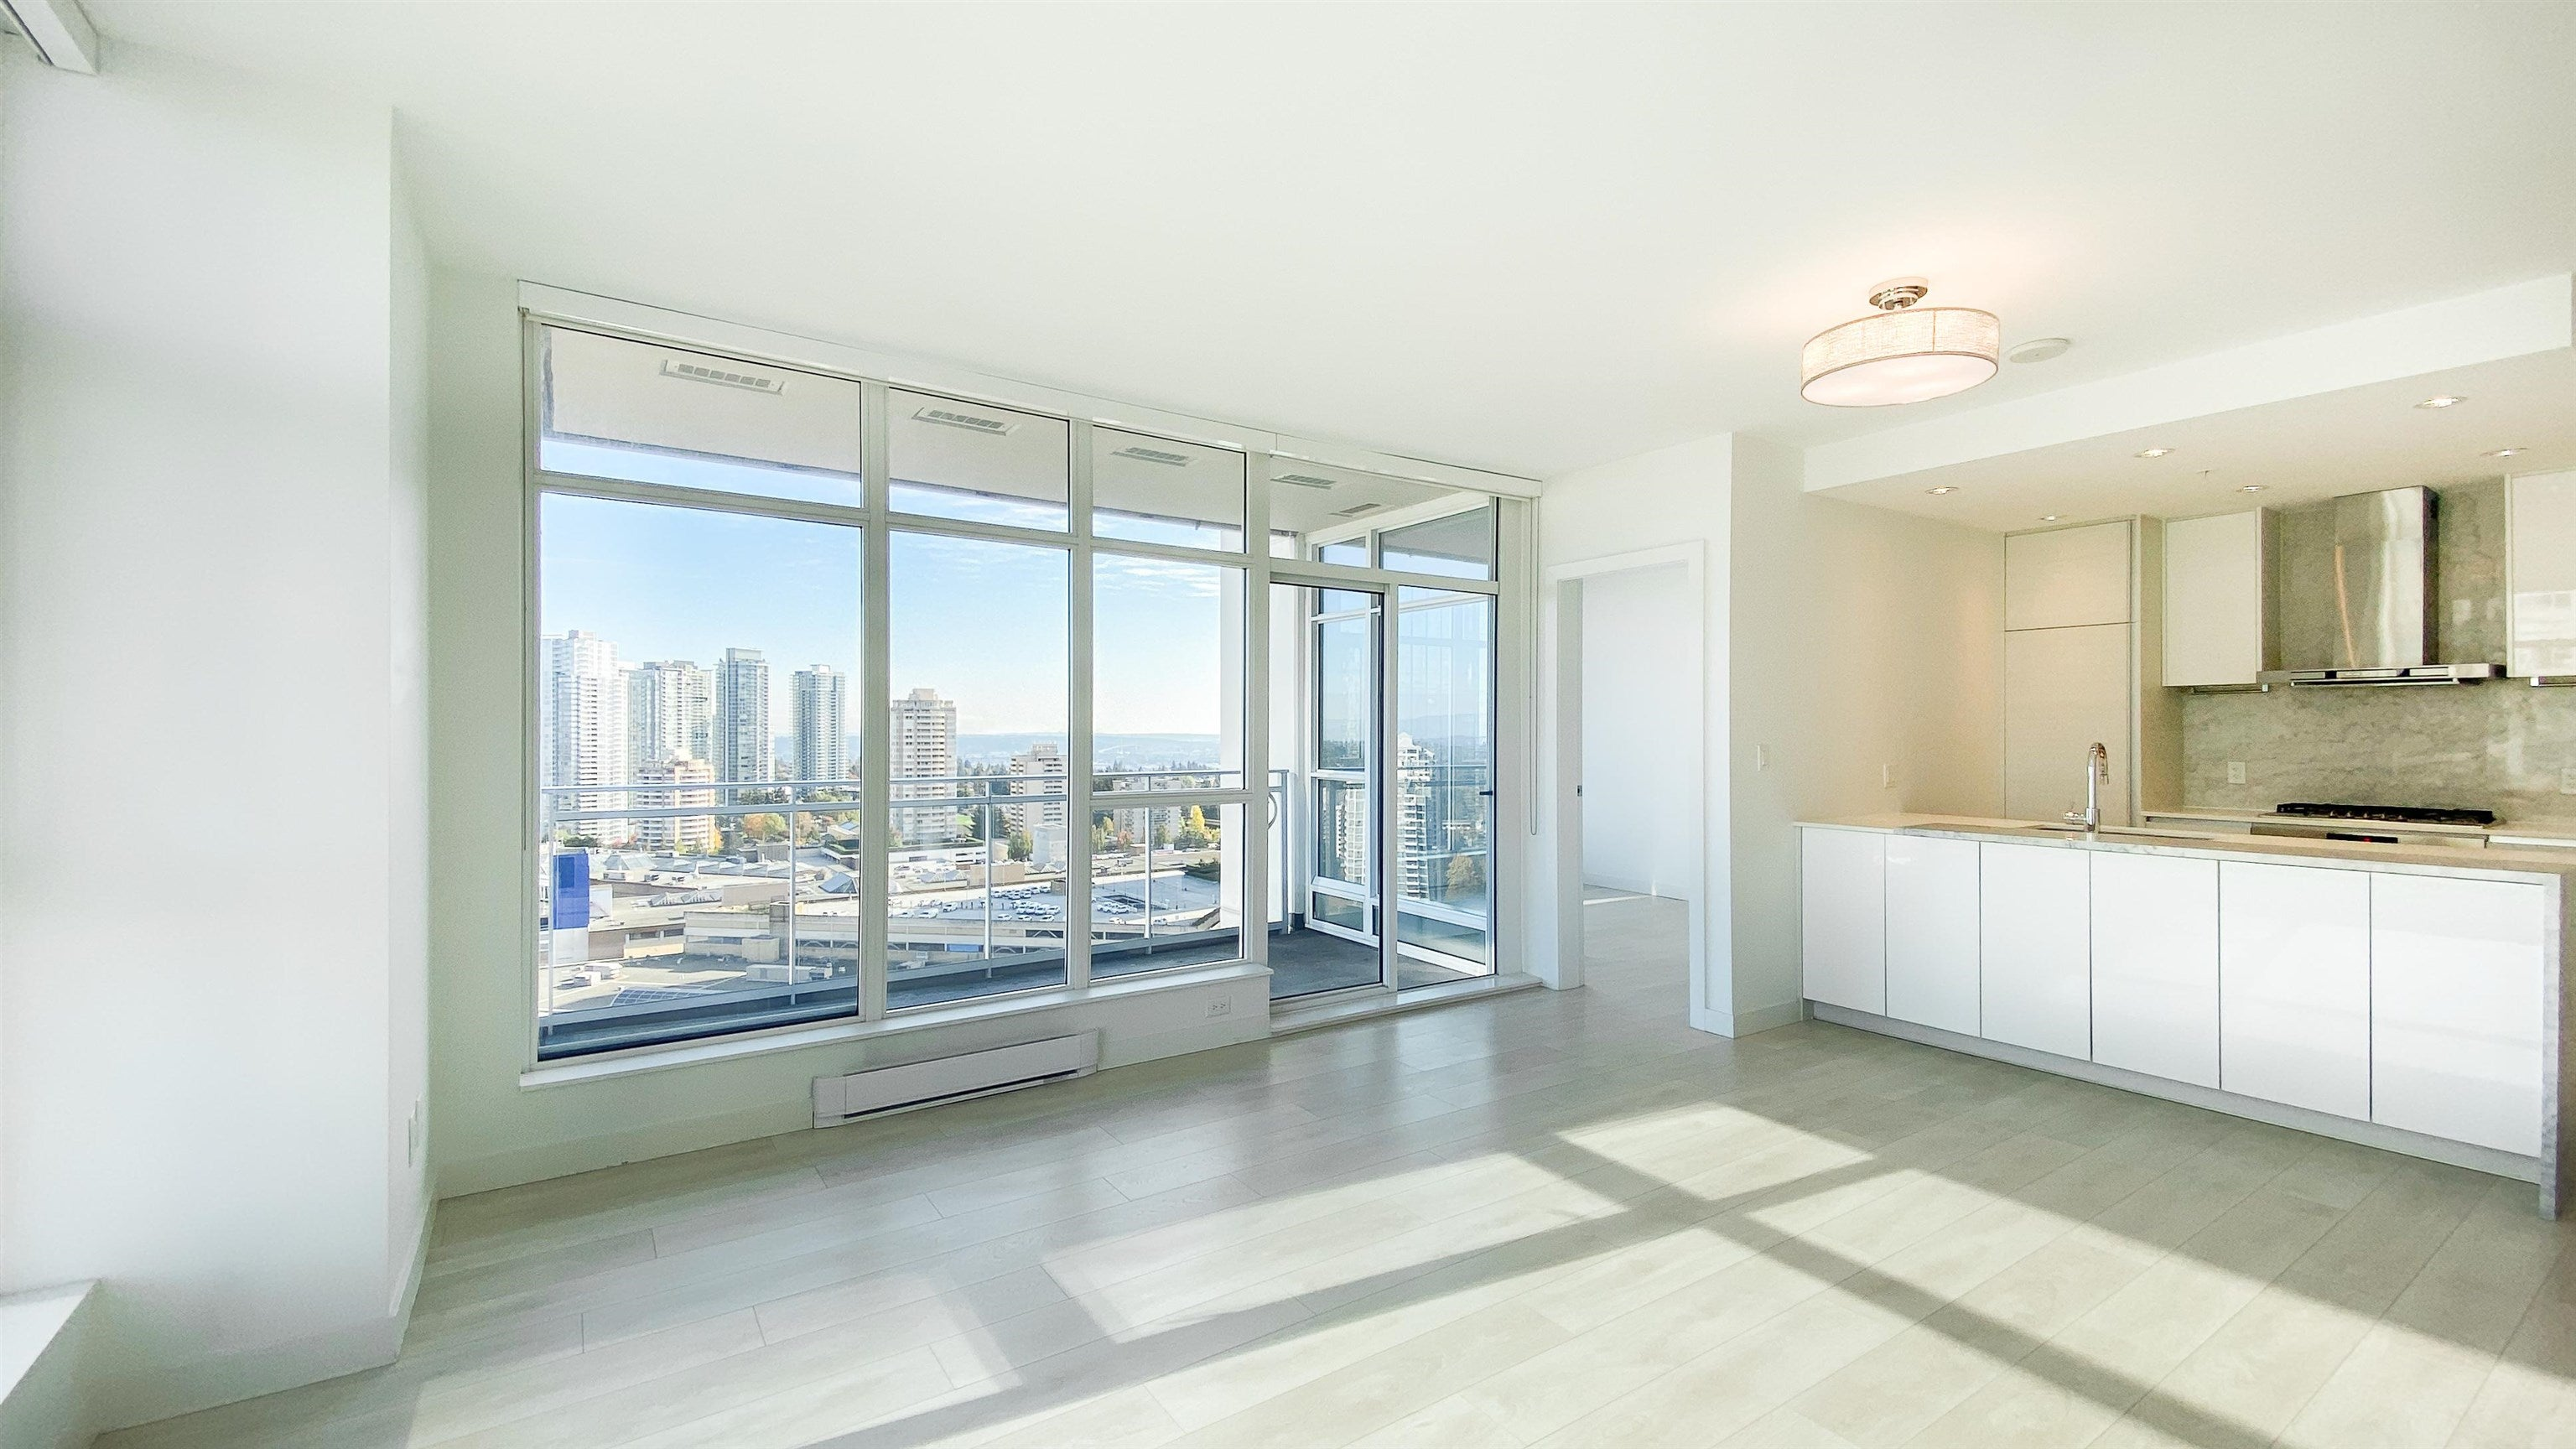 2510 4670 ASSEMBLY WAY - Metrotown Apartment/Condo for sale, 2 Bedrooms (R2625732) - #12